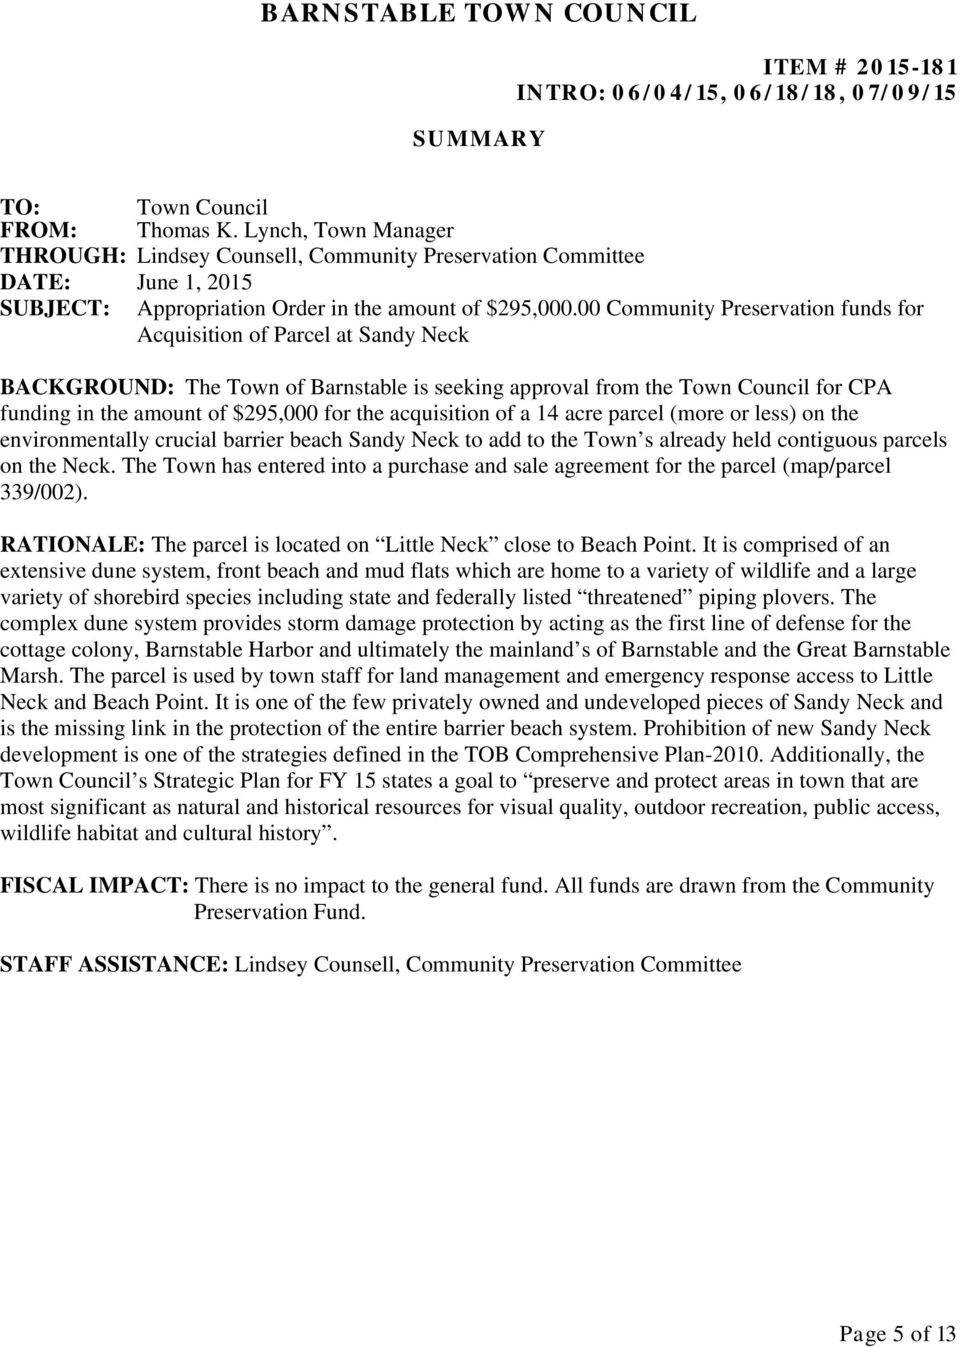 00 Community Preservation funds for Acquisition of Parcel at Sandy Neck BACKGROUND: The Town of Barnstable is seeking approval from the Town Council for CPA funding in the amount of $295,000 for the